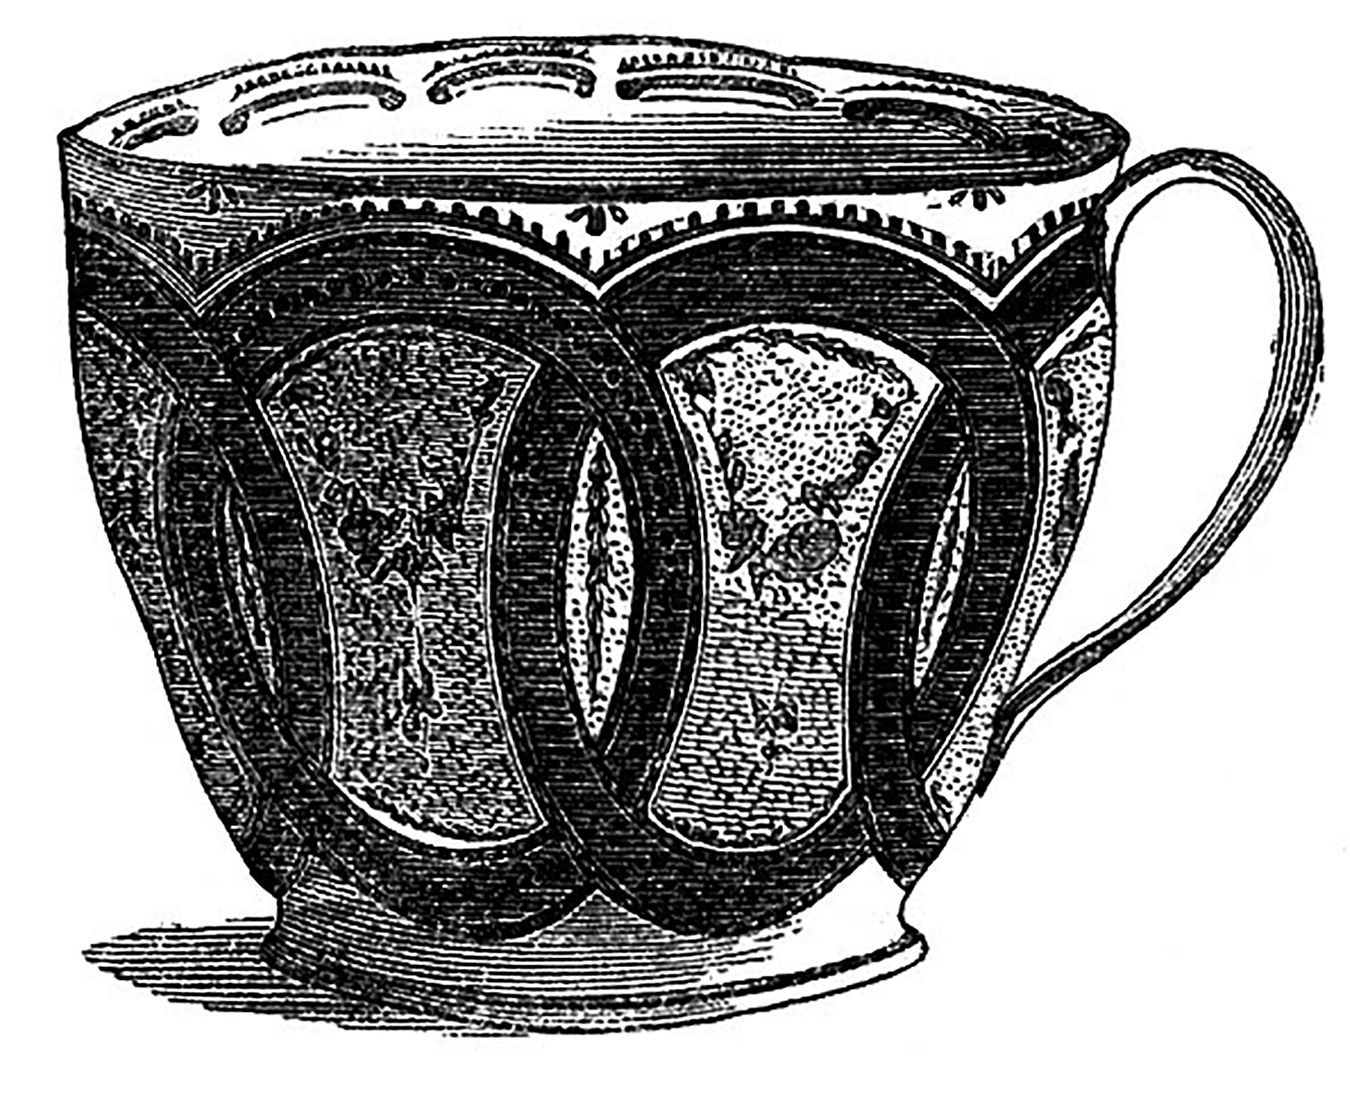 Black and White Teacup Interlocking CIrcles Picture